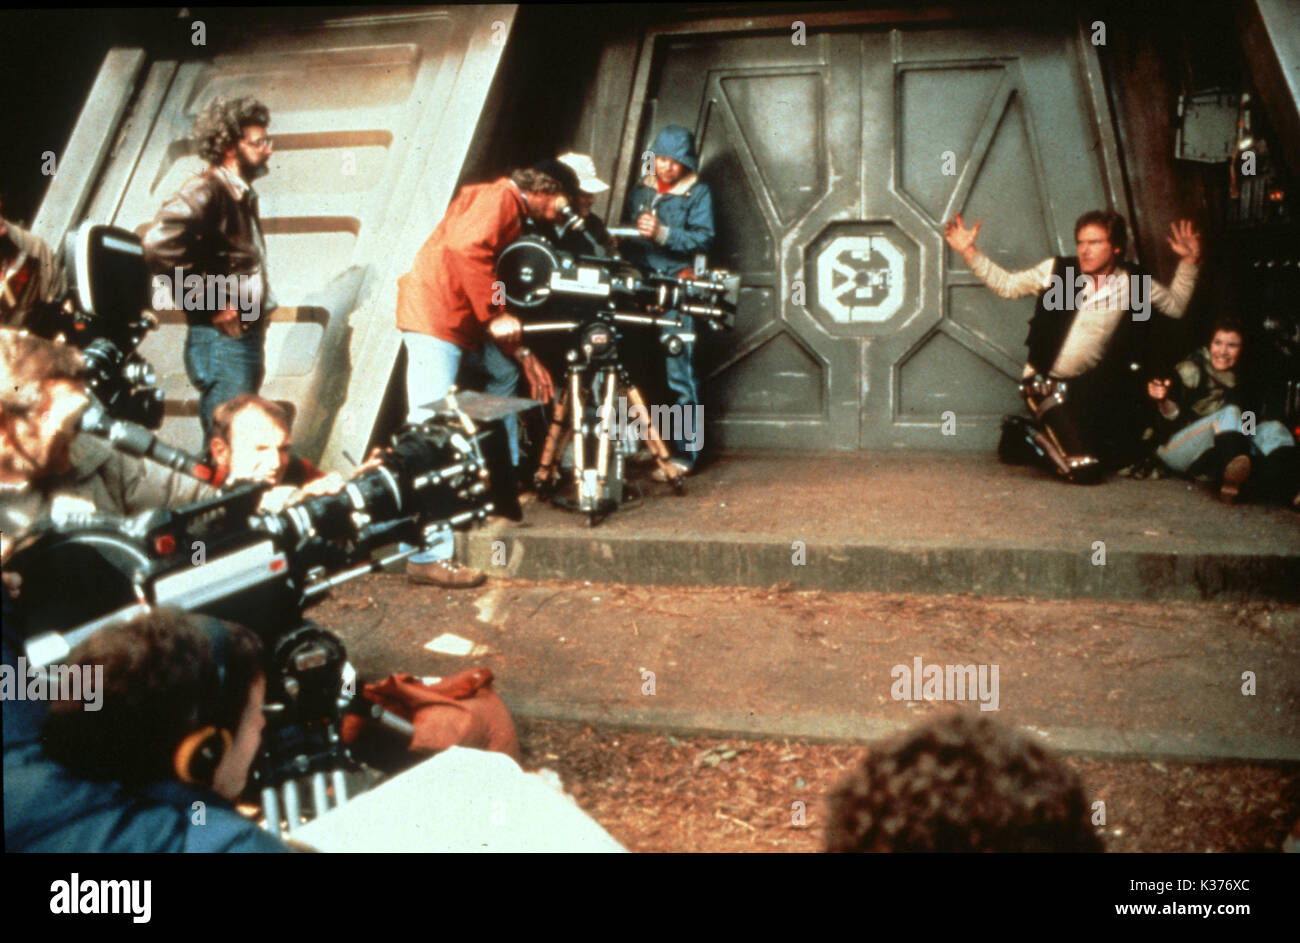 STAR WARS: EPISODE VI - THE RETURN OF THE JEDI LUCASFILMS/20TH FOX GEORGE LUCAS , HARRISON FORD, CARRIE FISHER right     Date: 1983 - Stock Image